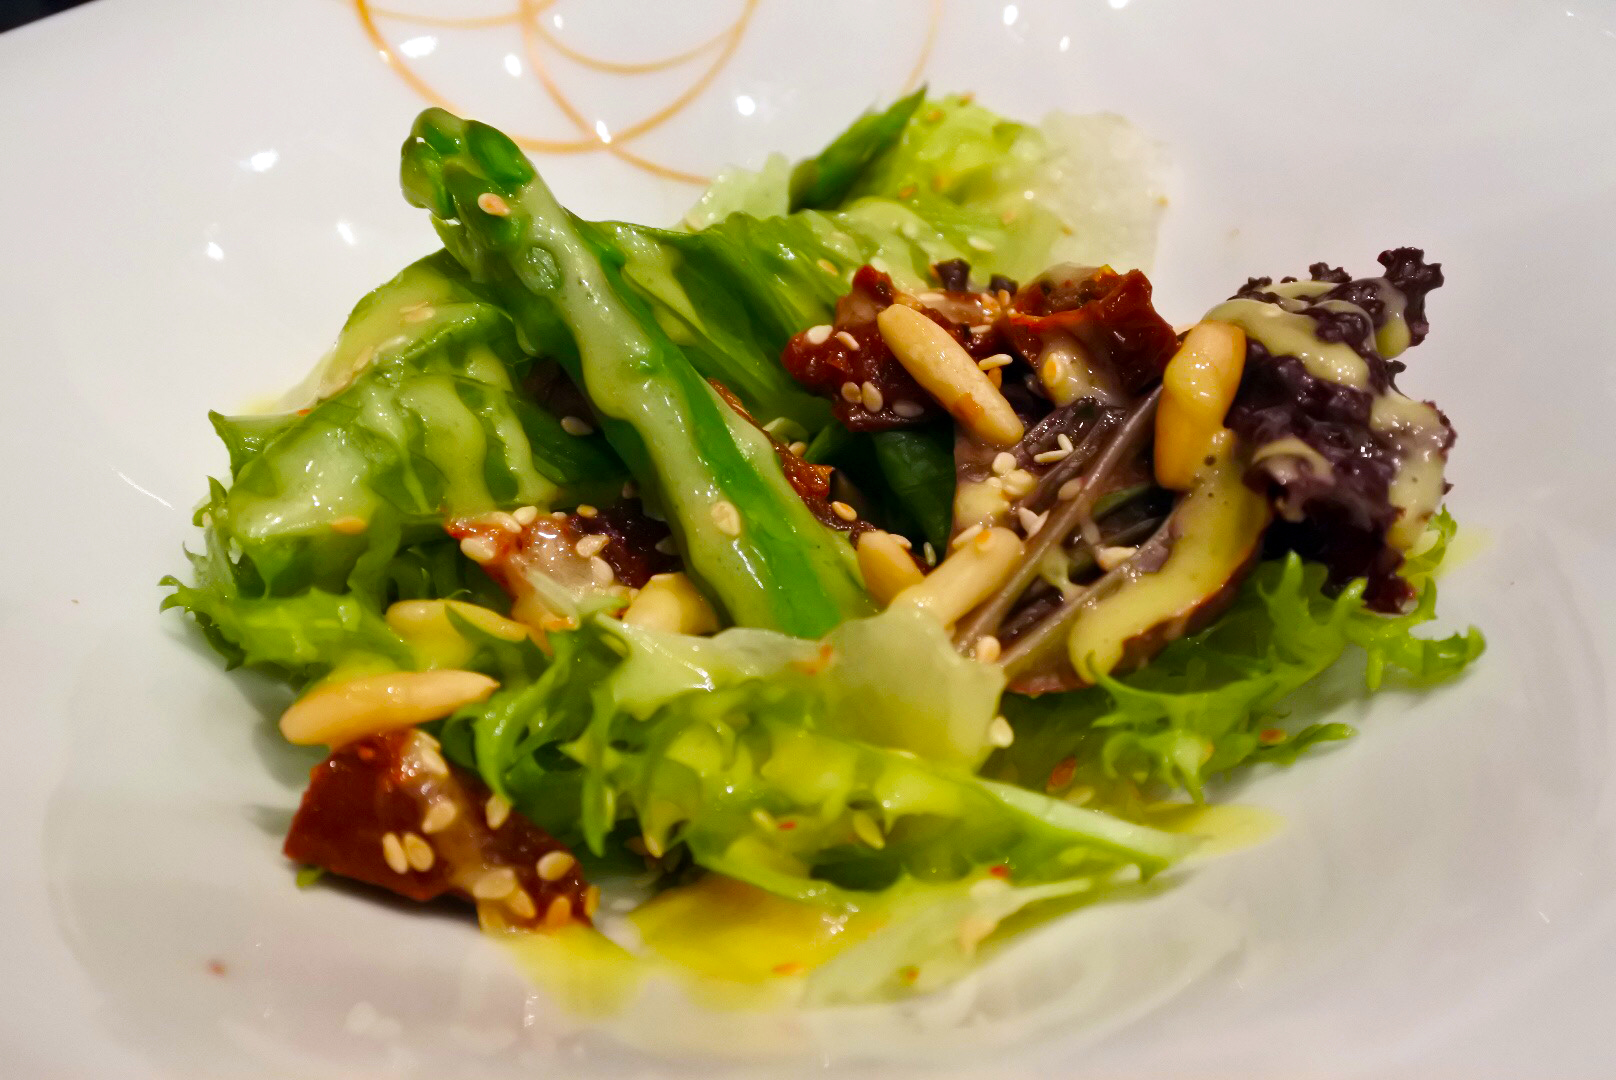 Insalata di asparagi - an asparagus salad with sun-dried tomatoes, sesame seeds, and pine nuts